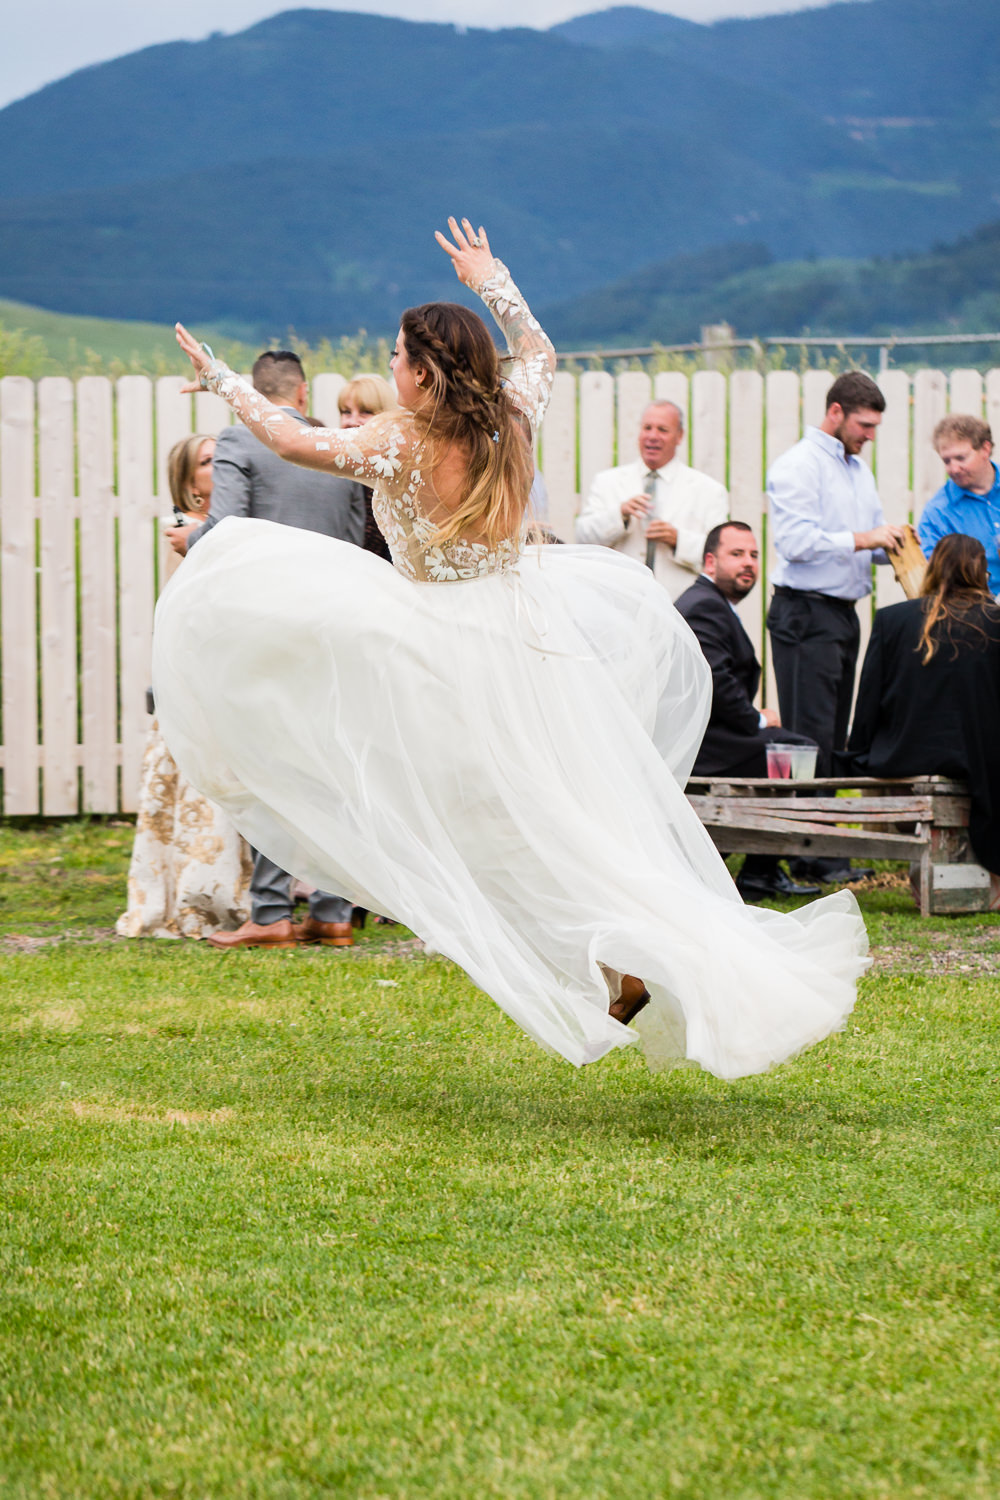 bozeman-hart-ranch-wedding-bride-leaps.jpg